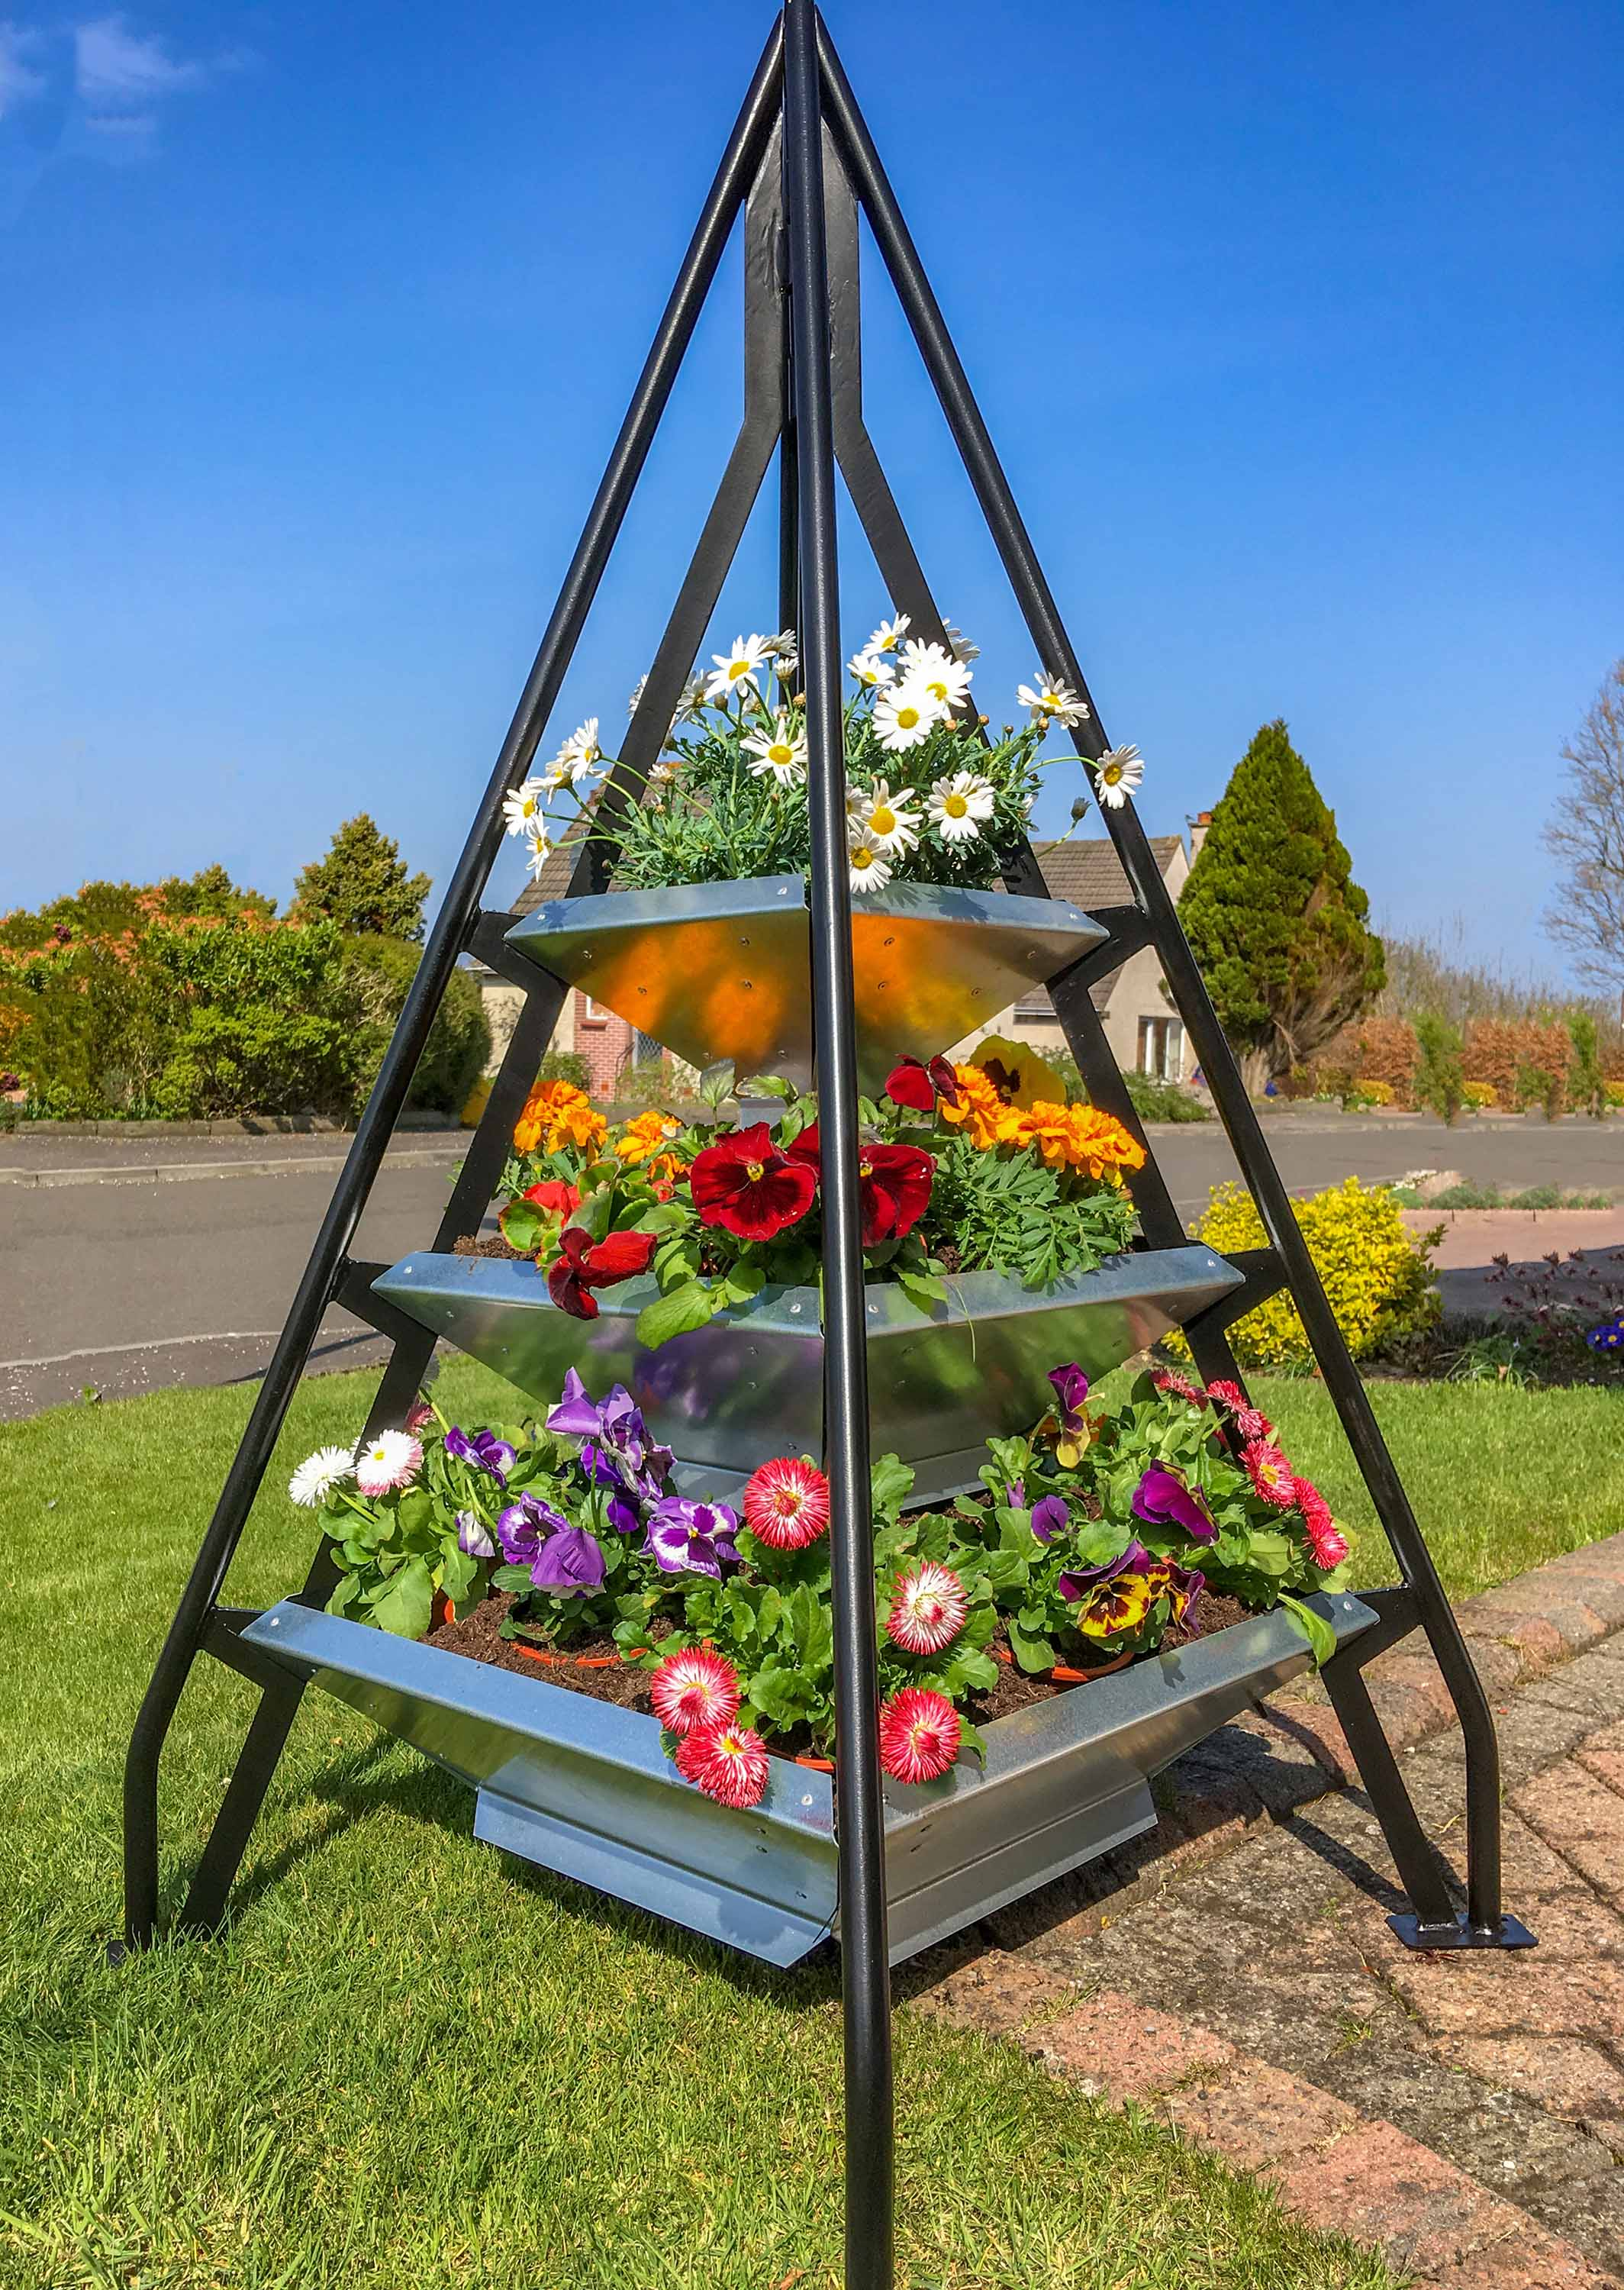 Pyramid Plantershttp://www.pyramidplanters.co.uk/